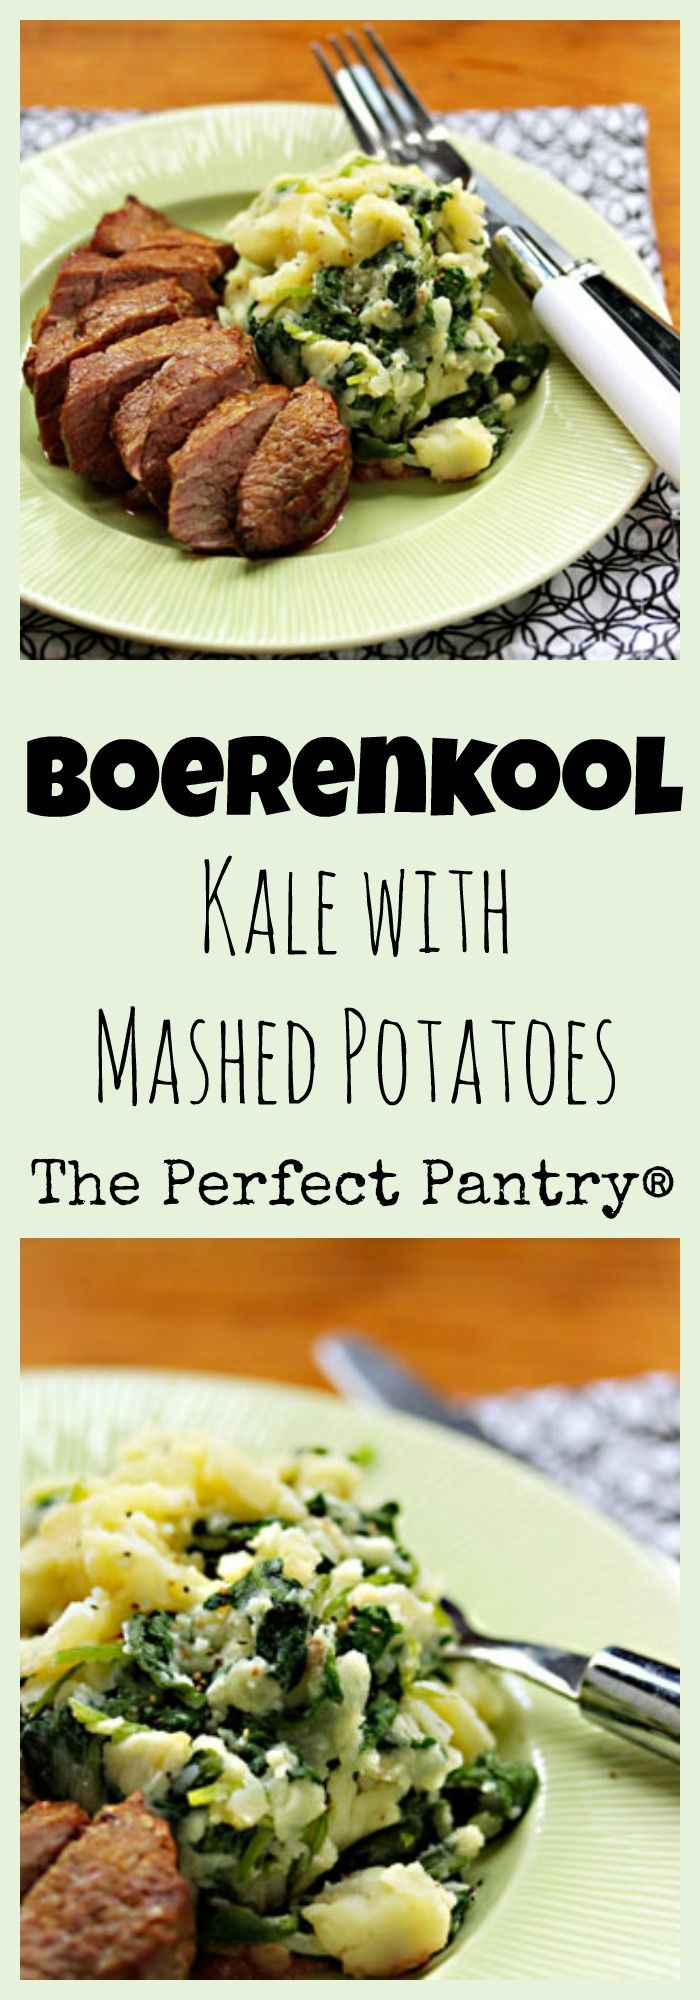 Boerenkool (kale with mashed potatoes), an easy side dish. #vegetarian ...